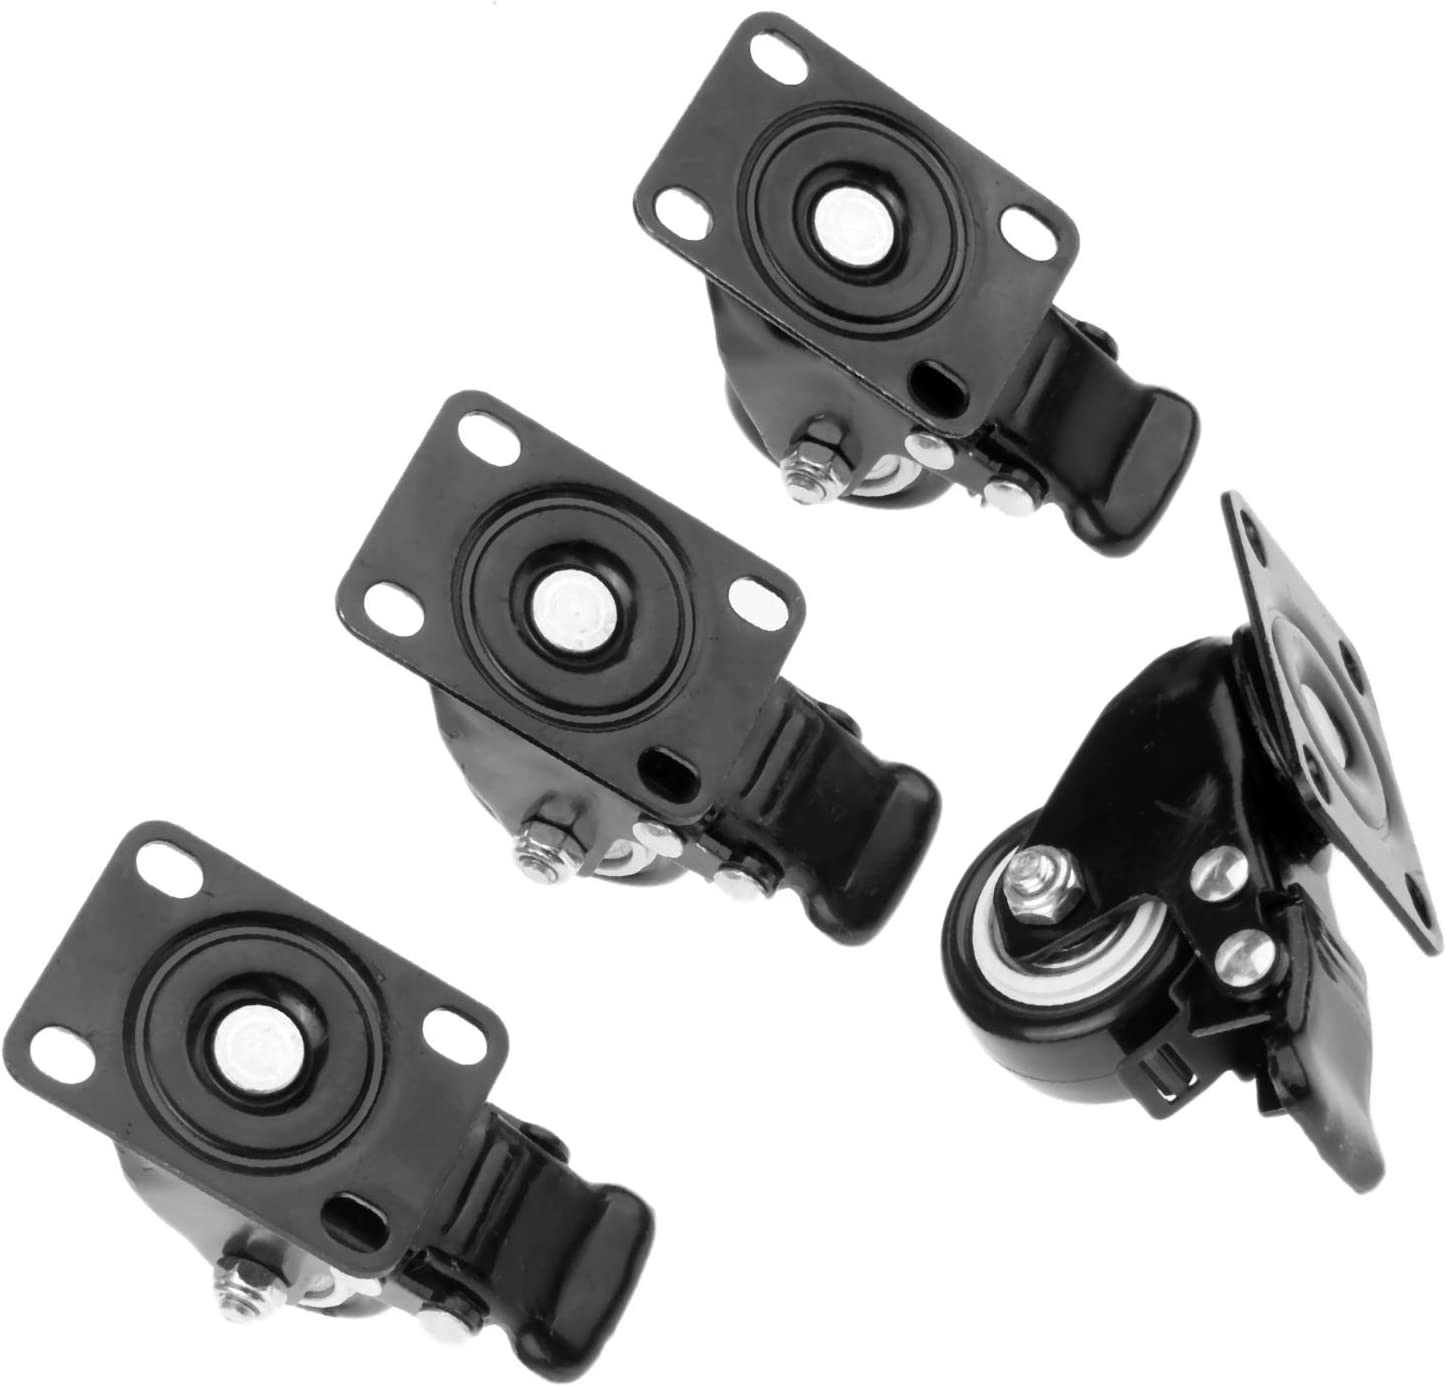 Mtsooning Swivel Caster Wheels with Safety Dual Locking 4pcs 1.5 Mute Stem Swivel Rubber Base Bearings Rollers for Carts Trolley